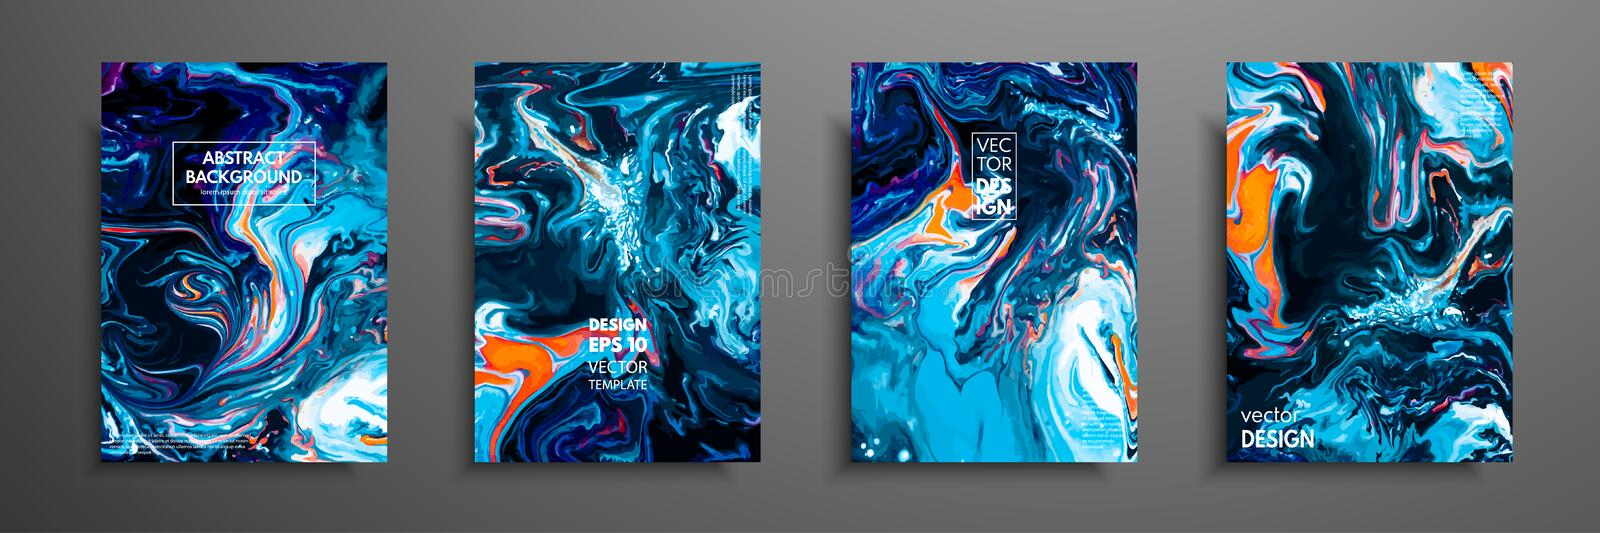 Mixture of acrylic paints. Liquid marble texture. Fluid art. Applicable for design cover, presentation, invitation royalty free illustration